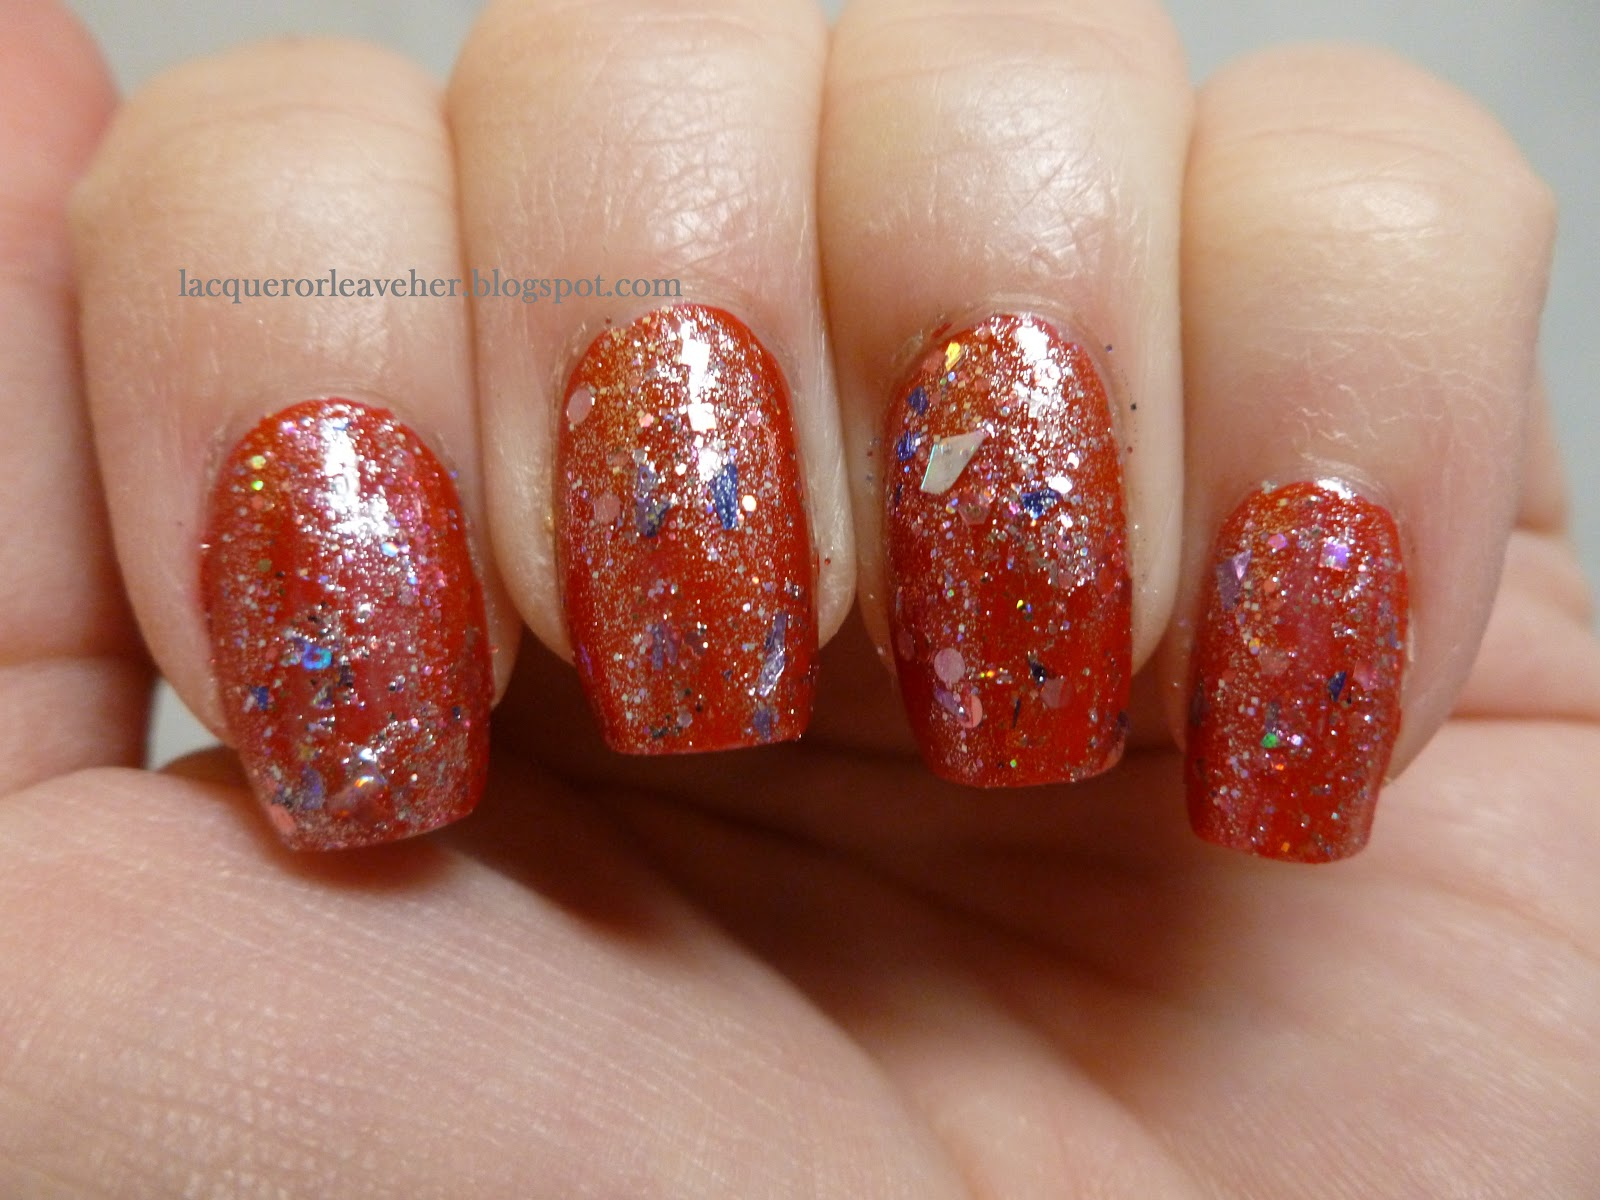 Laquerlicious Queen Crown Over China Glaze With Love